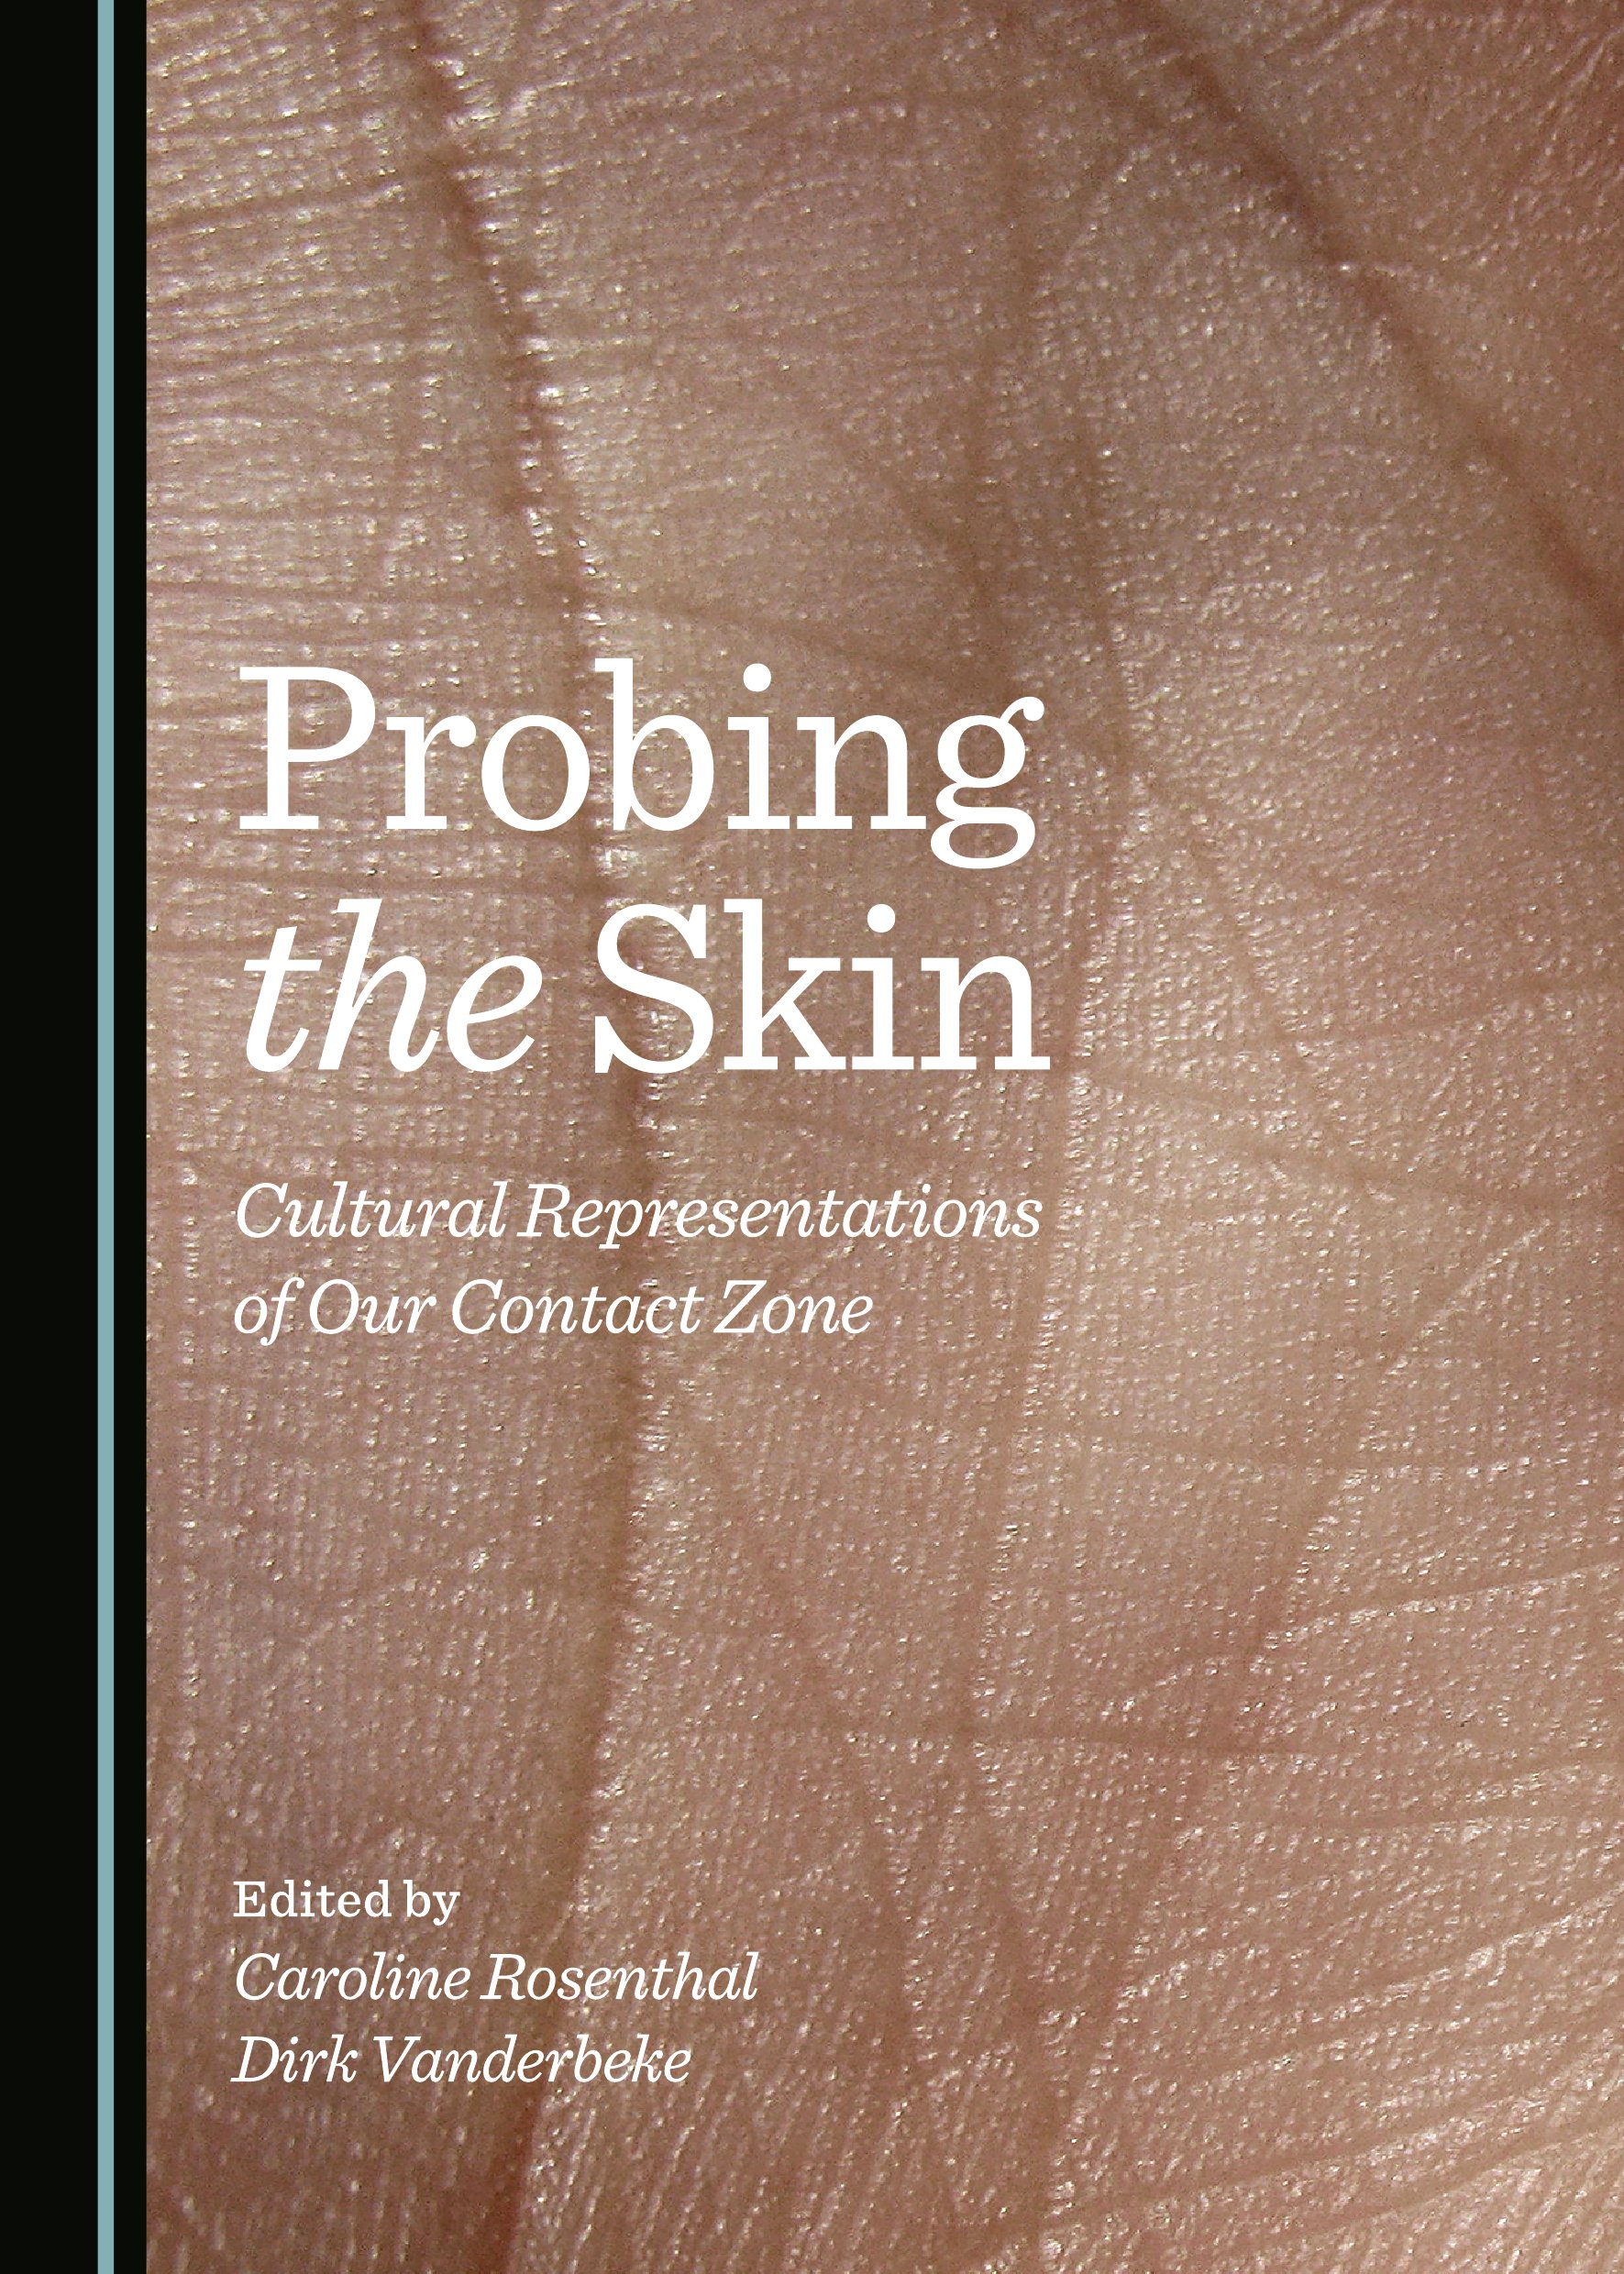 Probing the Skin: Cultural Representations of Our Contact Zone